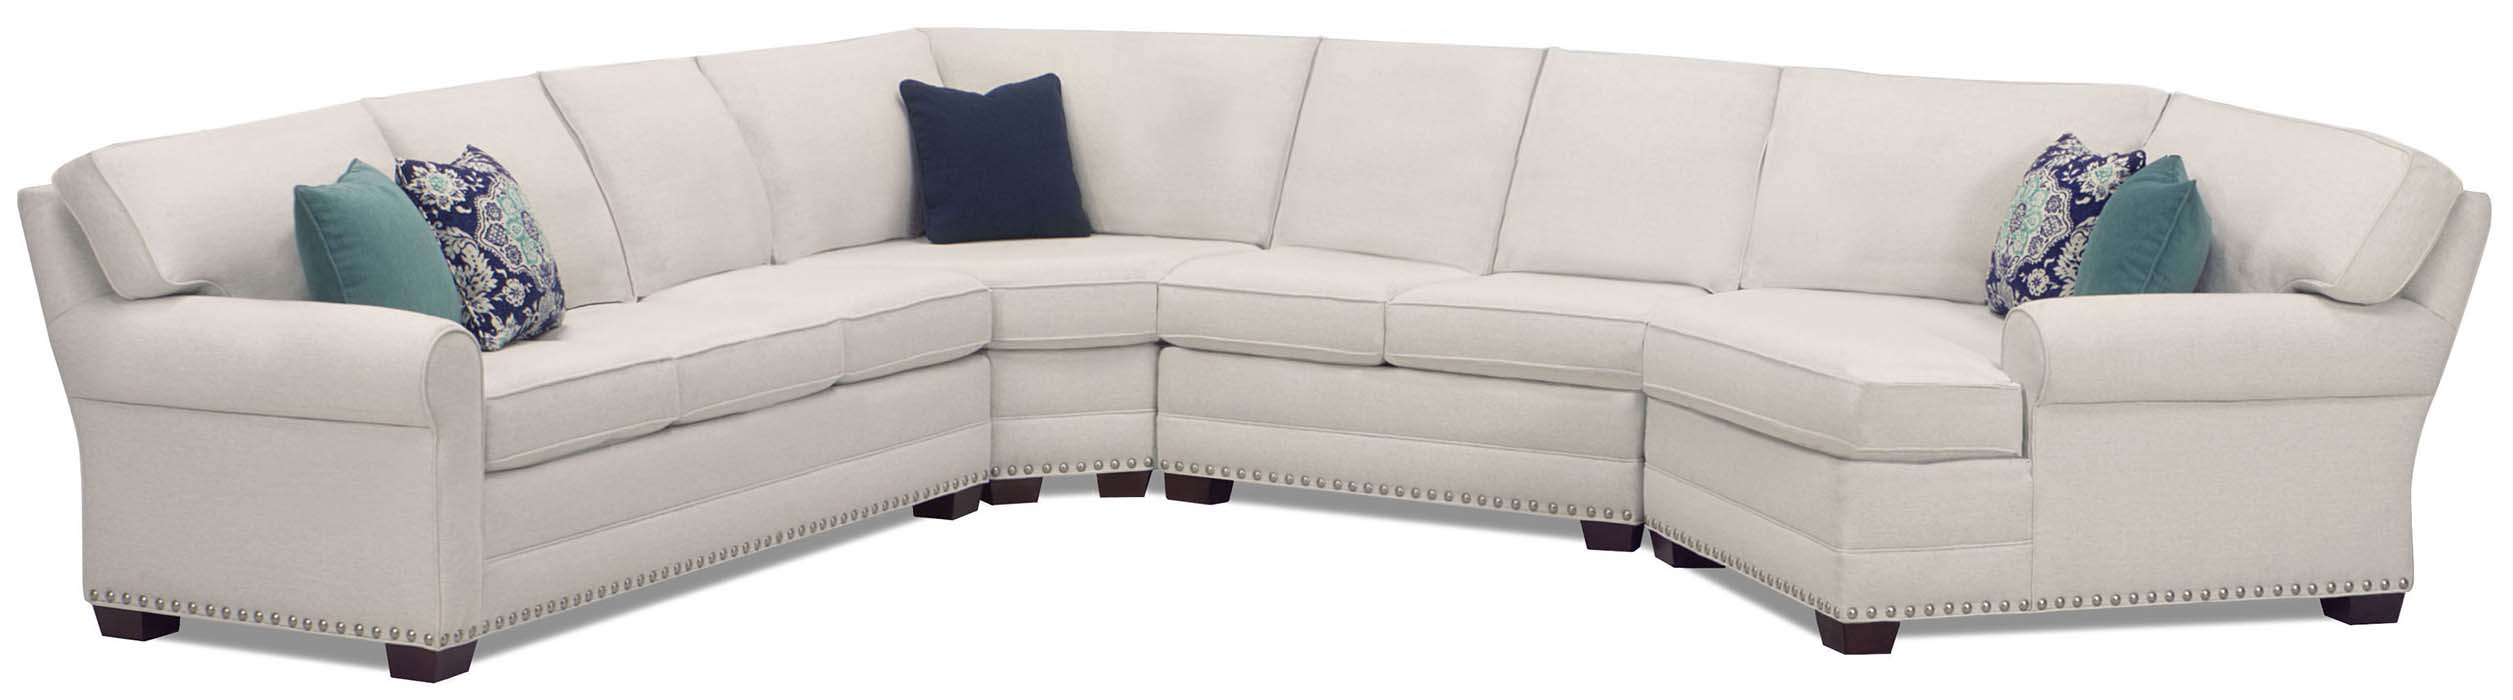 Sectional Herron's Amish Furniture